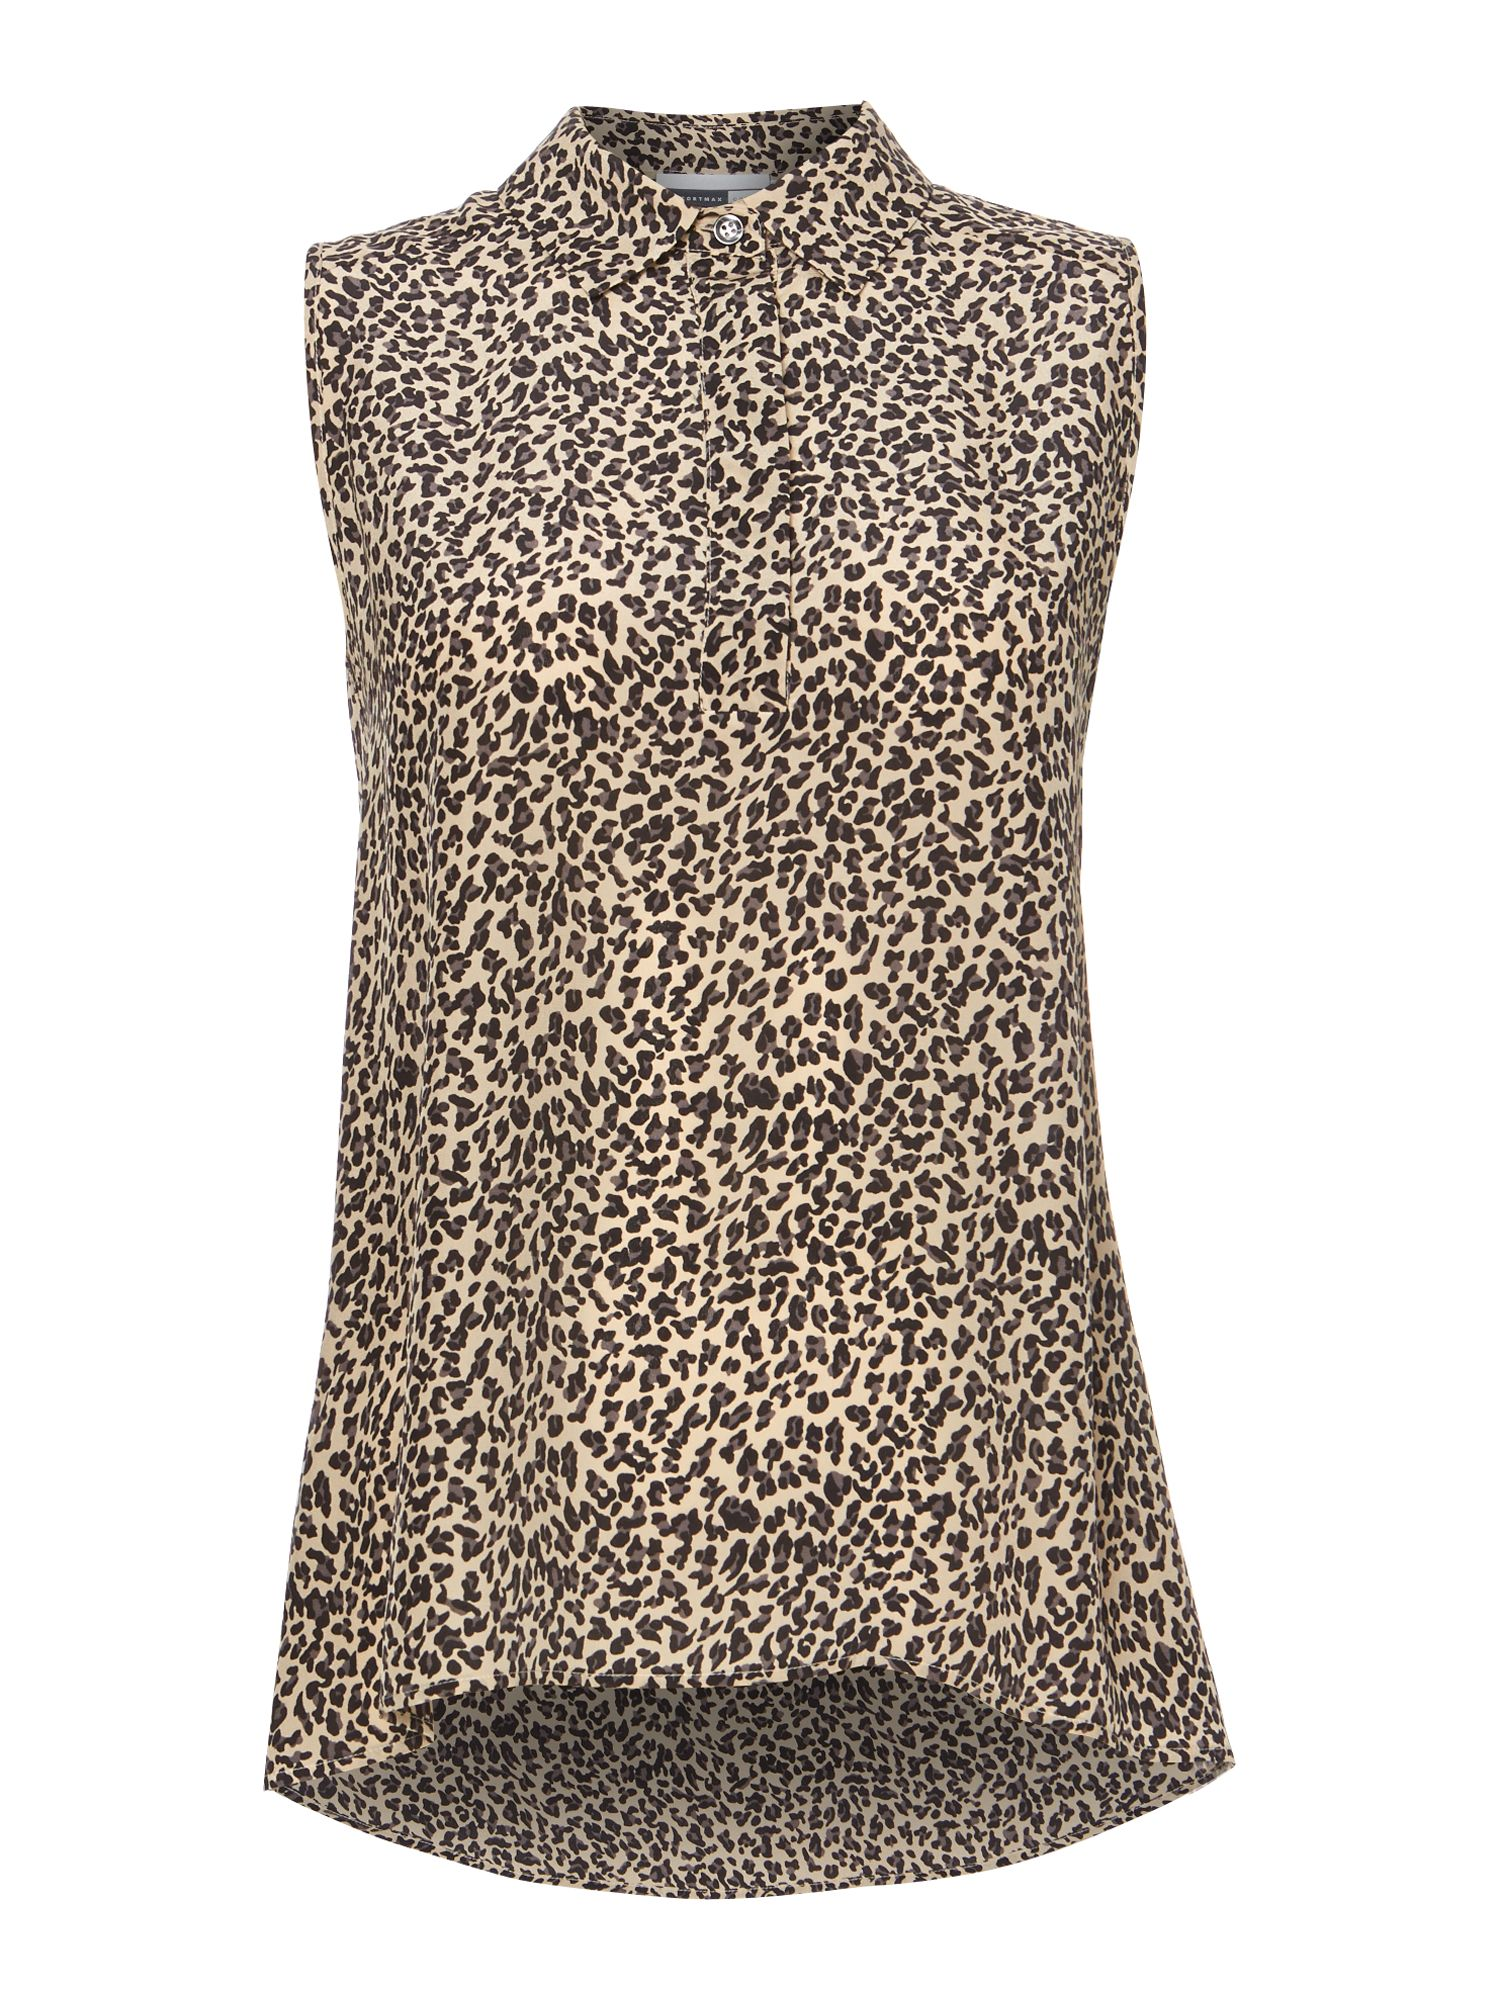 Vaimy short sleeved leopard print shirt